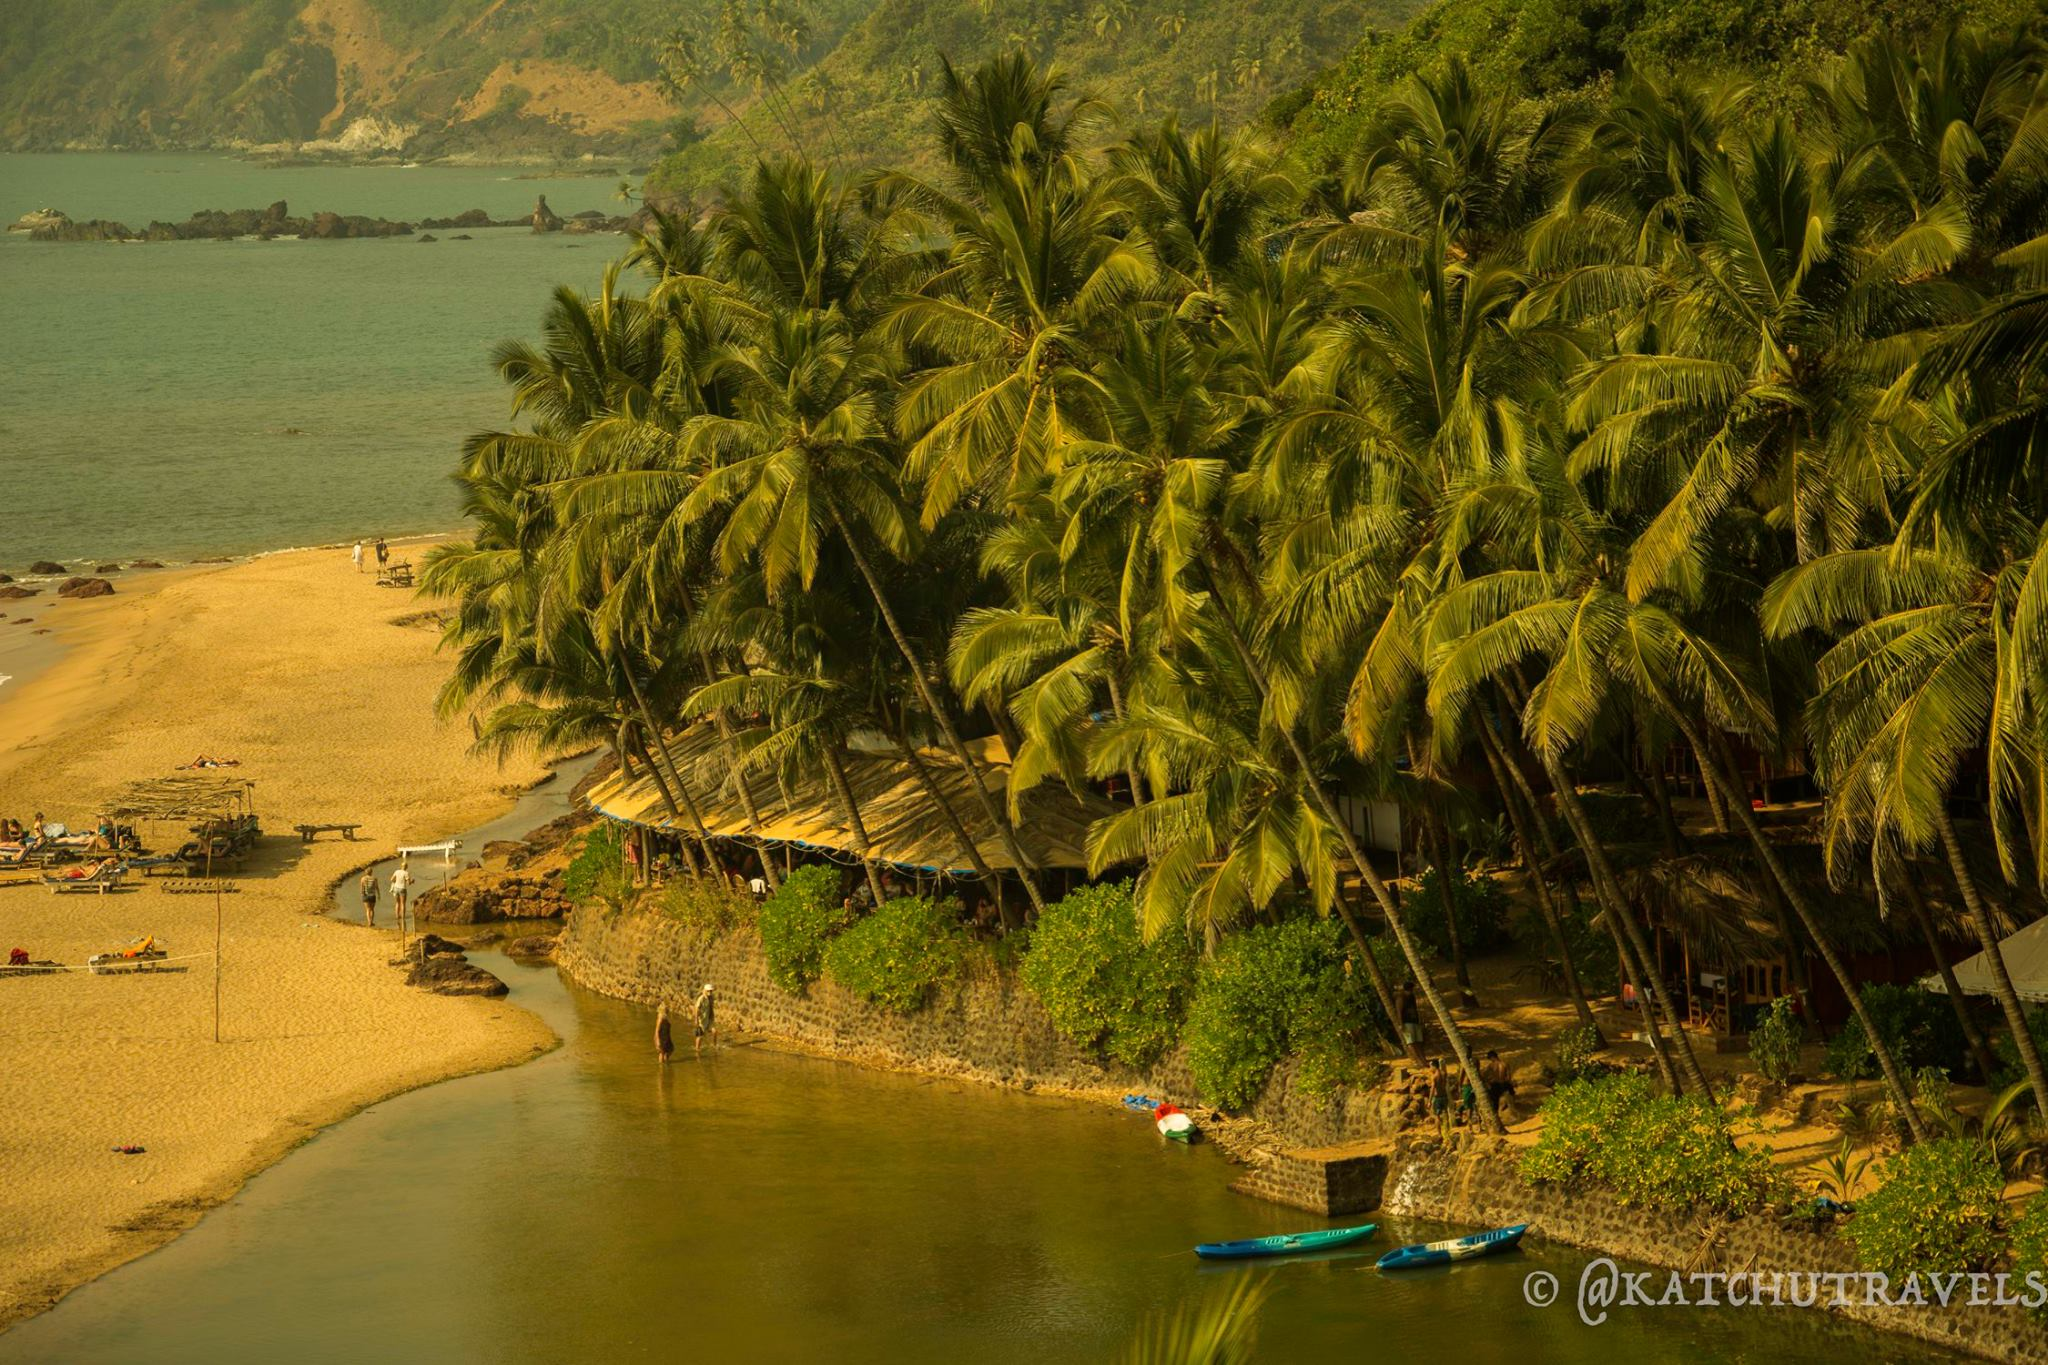 Kola Beach(Goa) from above